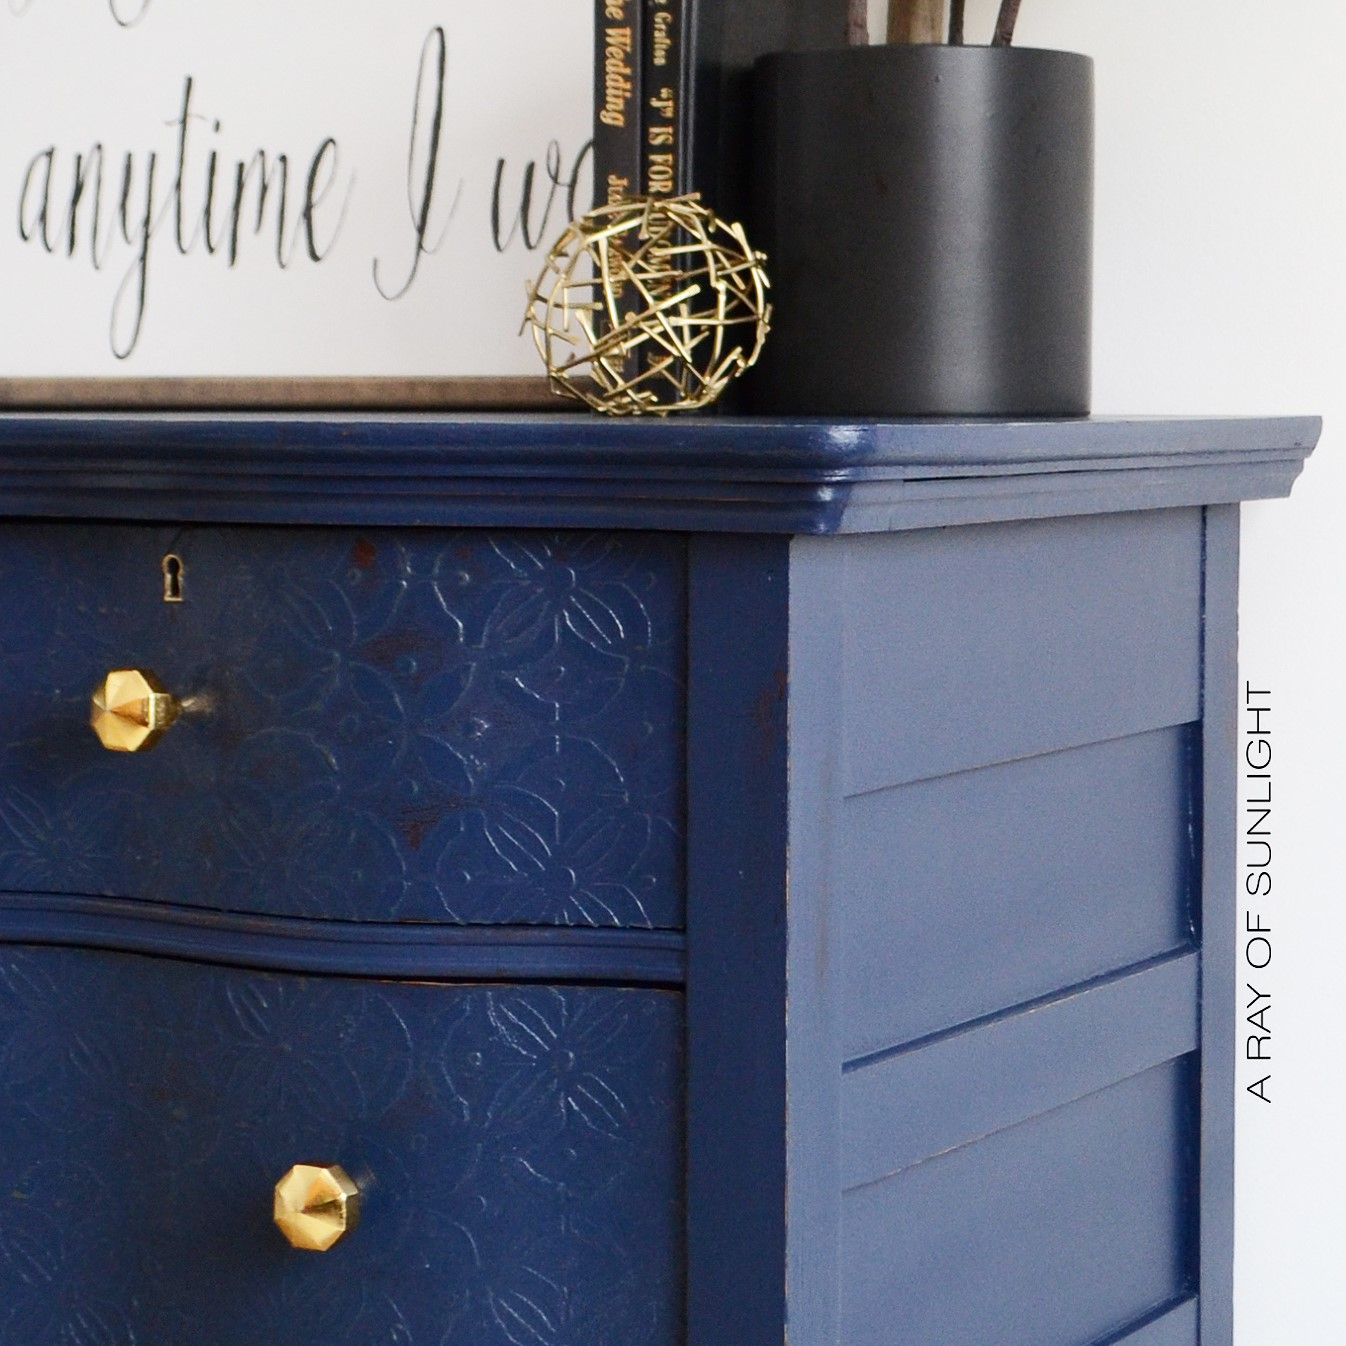 Navy Blue Antique Serpentine Dresser with Embossed Drawers and Gold  Geometric Knobs - Painted in Country - A Ray Of Sunlight: Navy Serpentine Dresser With Gold Knobs